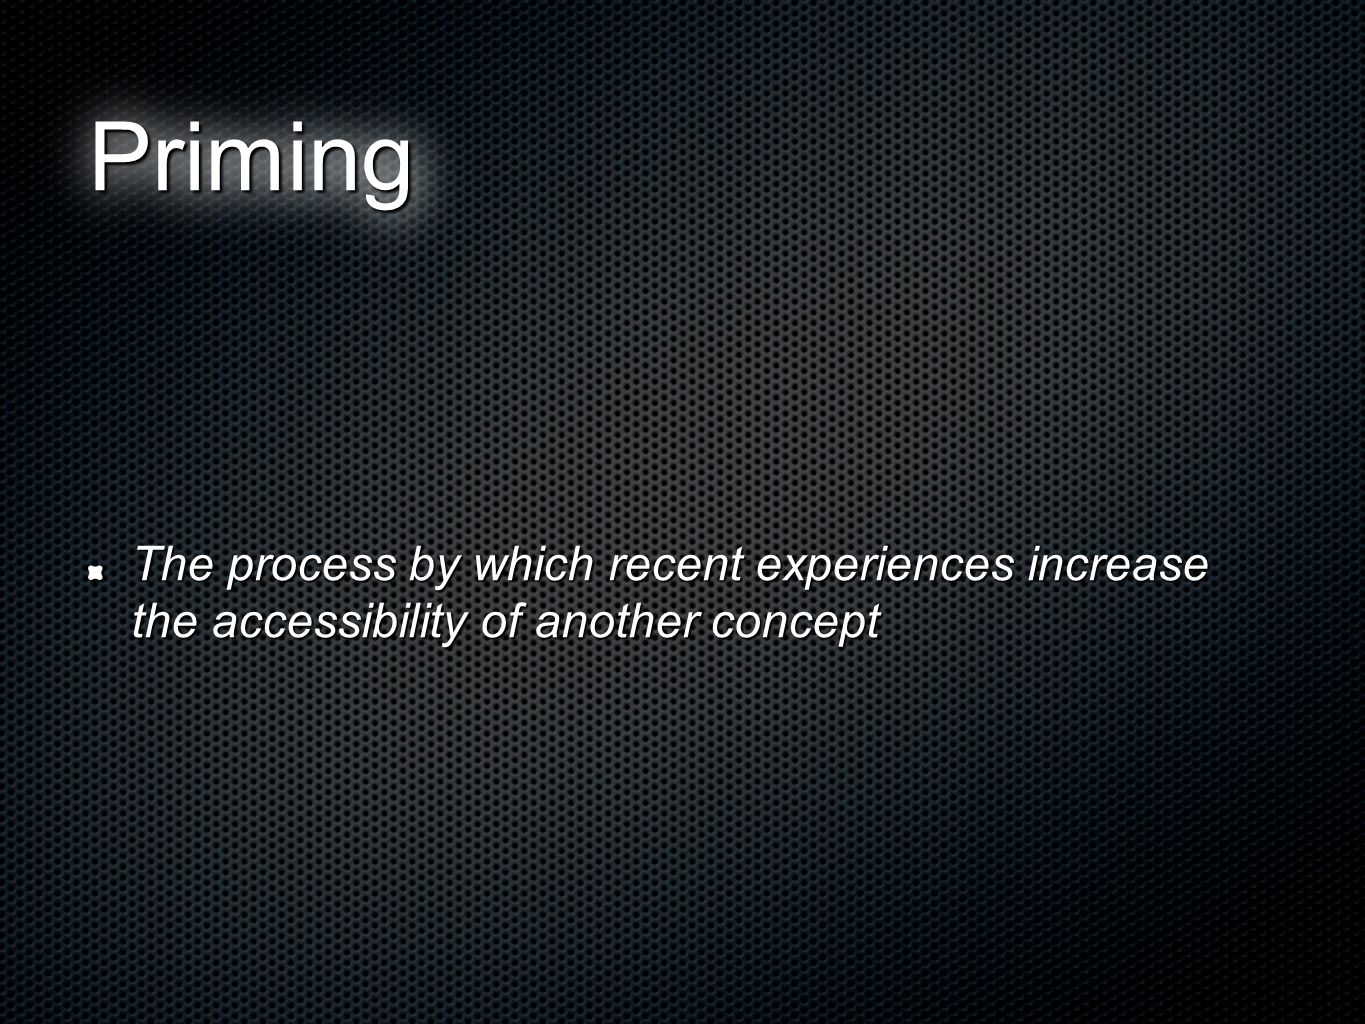 PrimingPriming The process by which recent experiences increase the accessibility of another concept